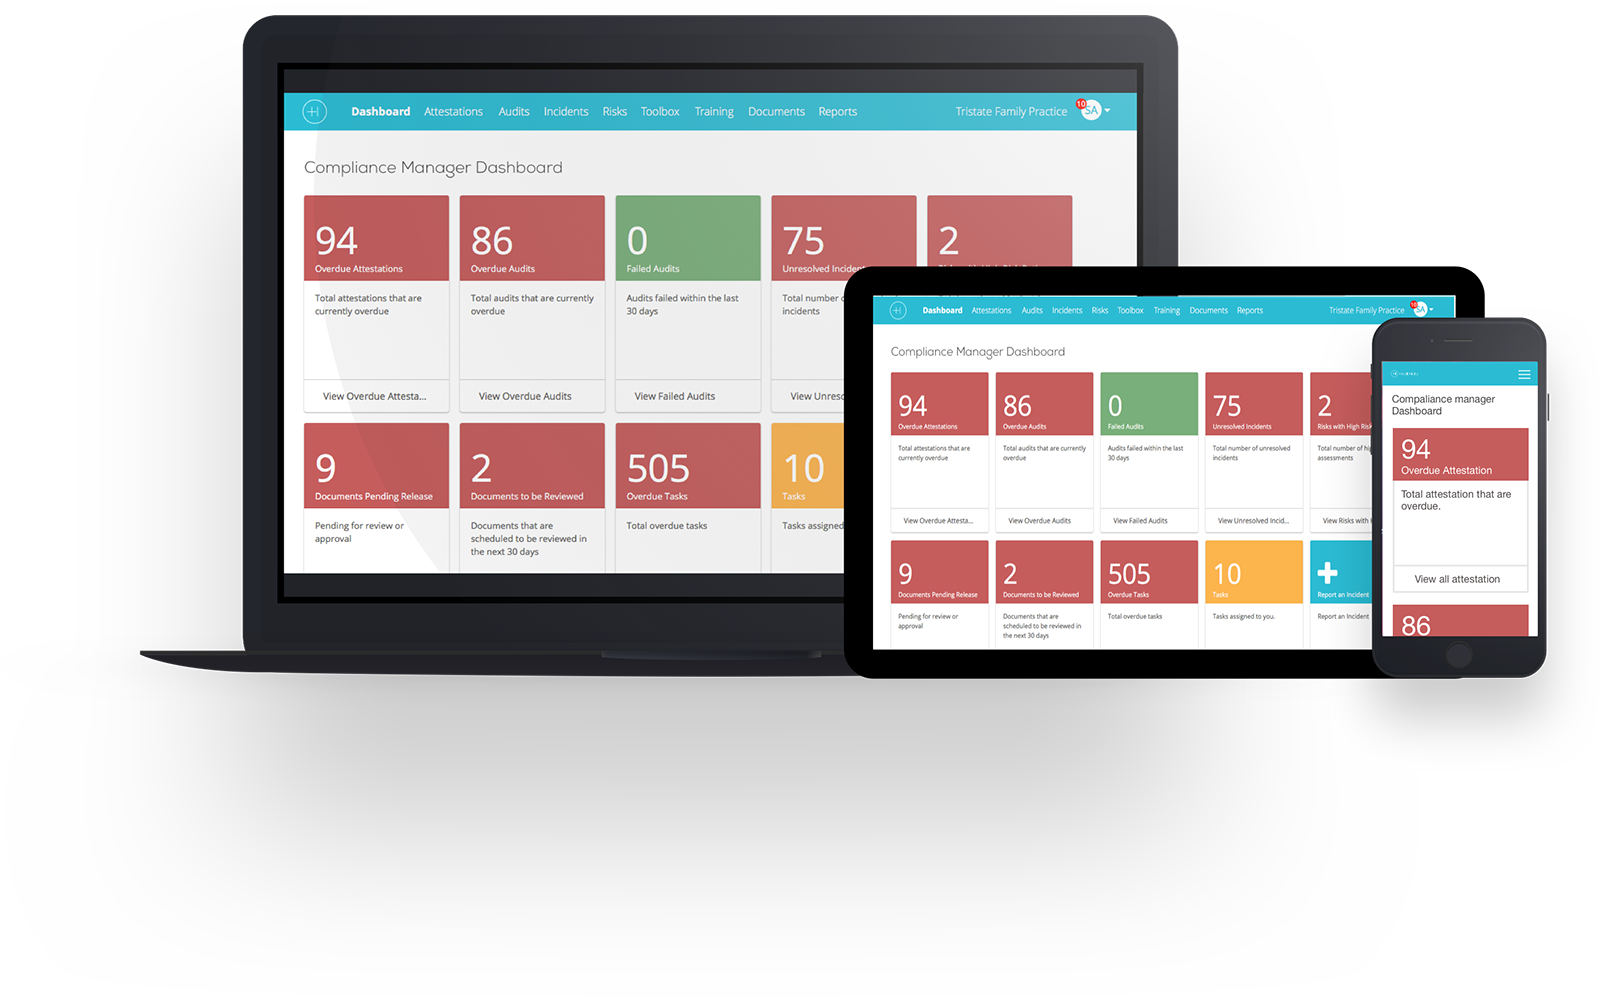 Compliance Manager Dashboard